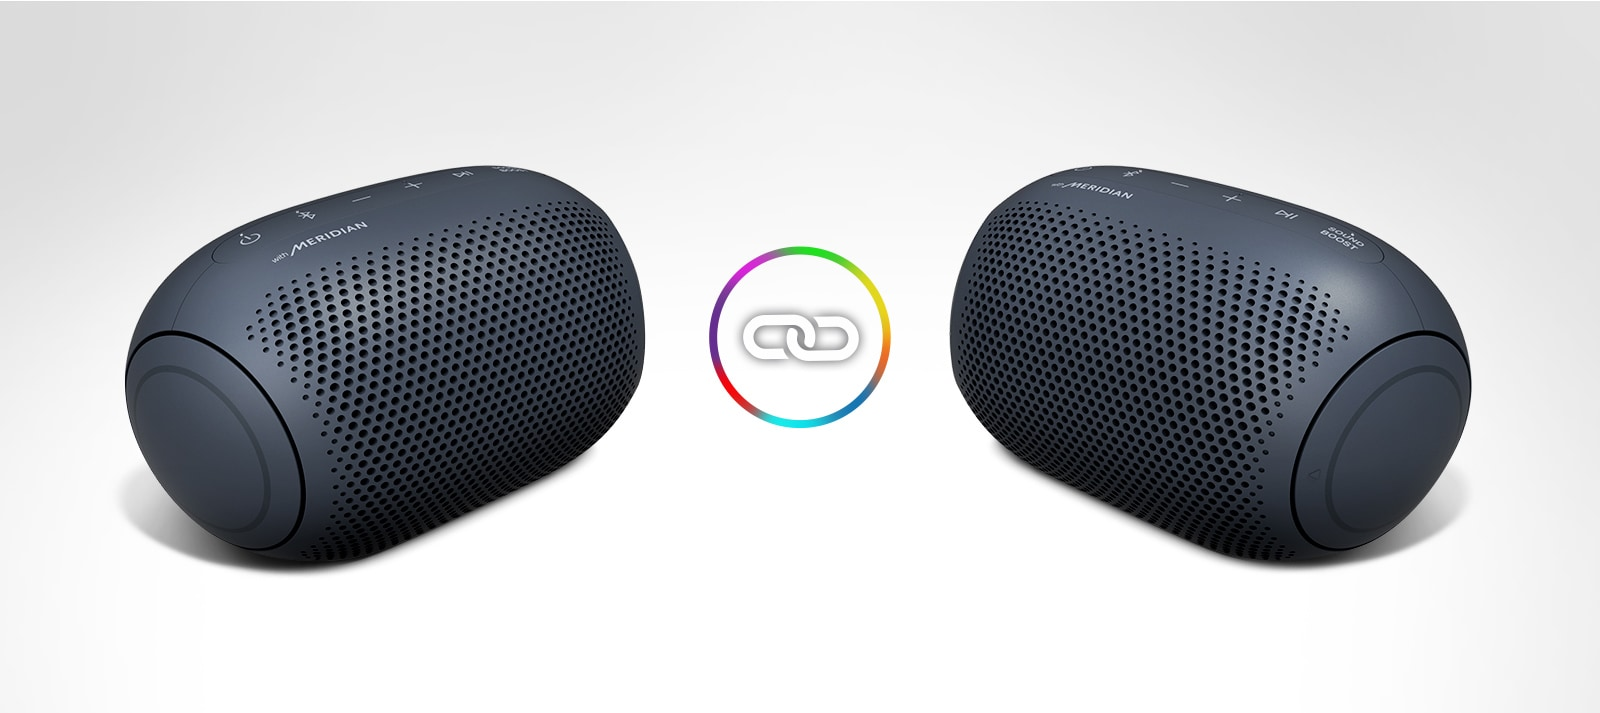 Two LG XBOOM Gos are placed on a white background and there is a ring icon in between.